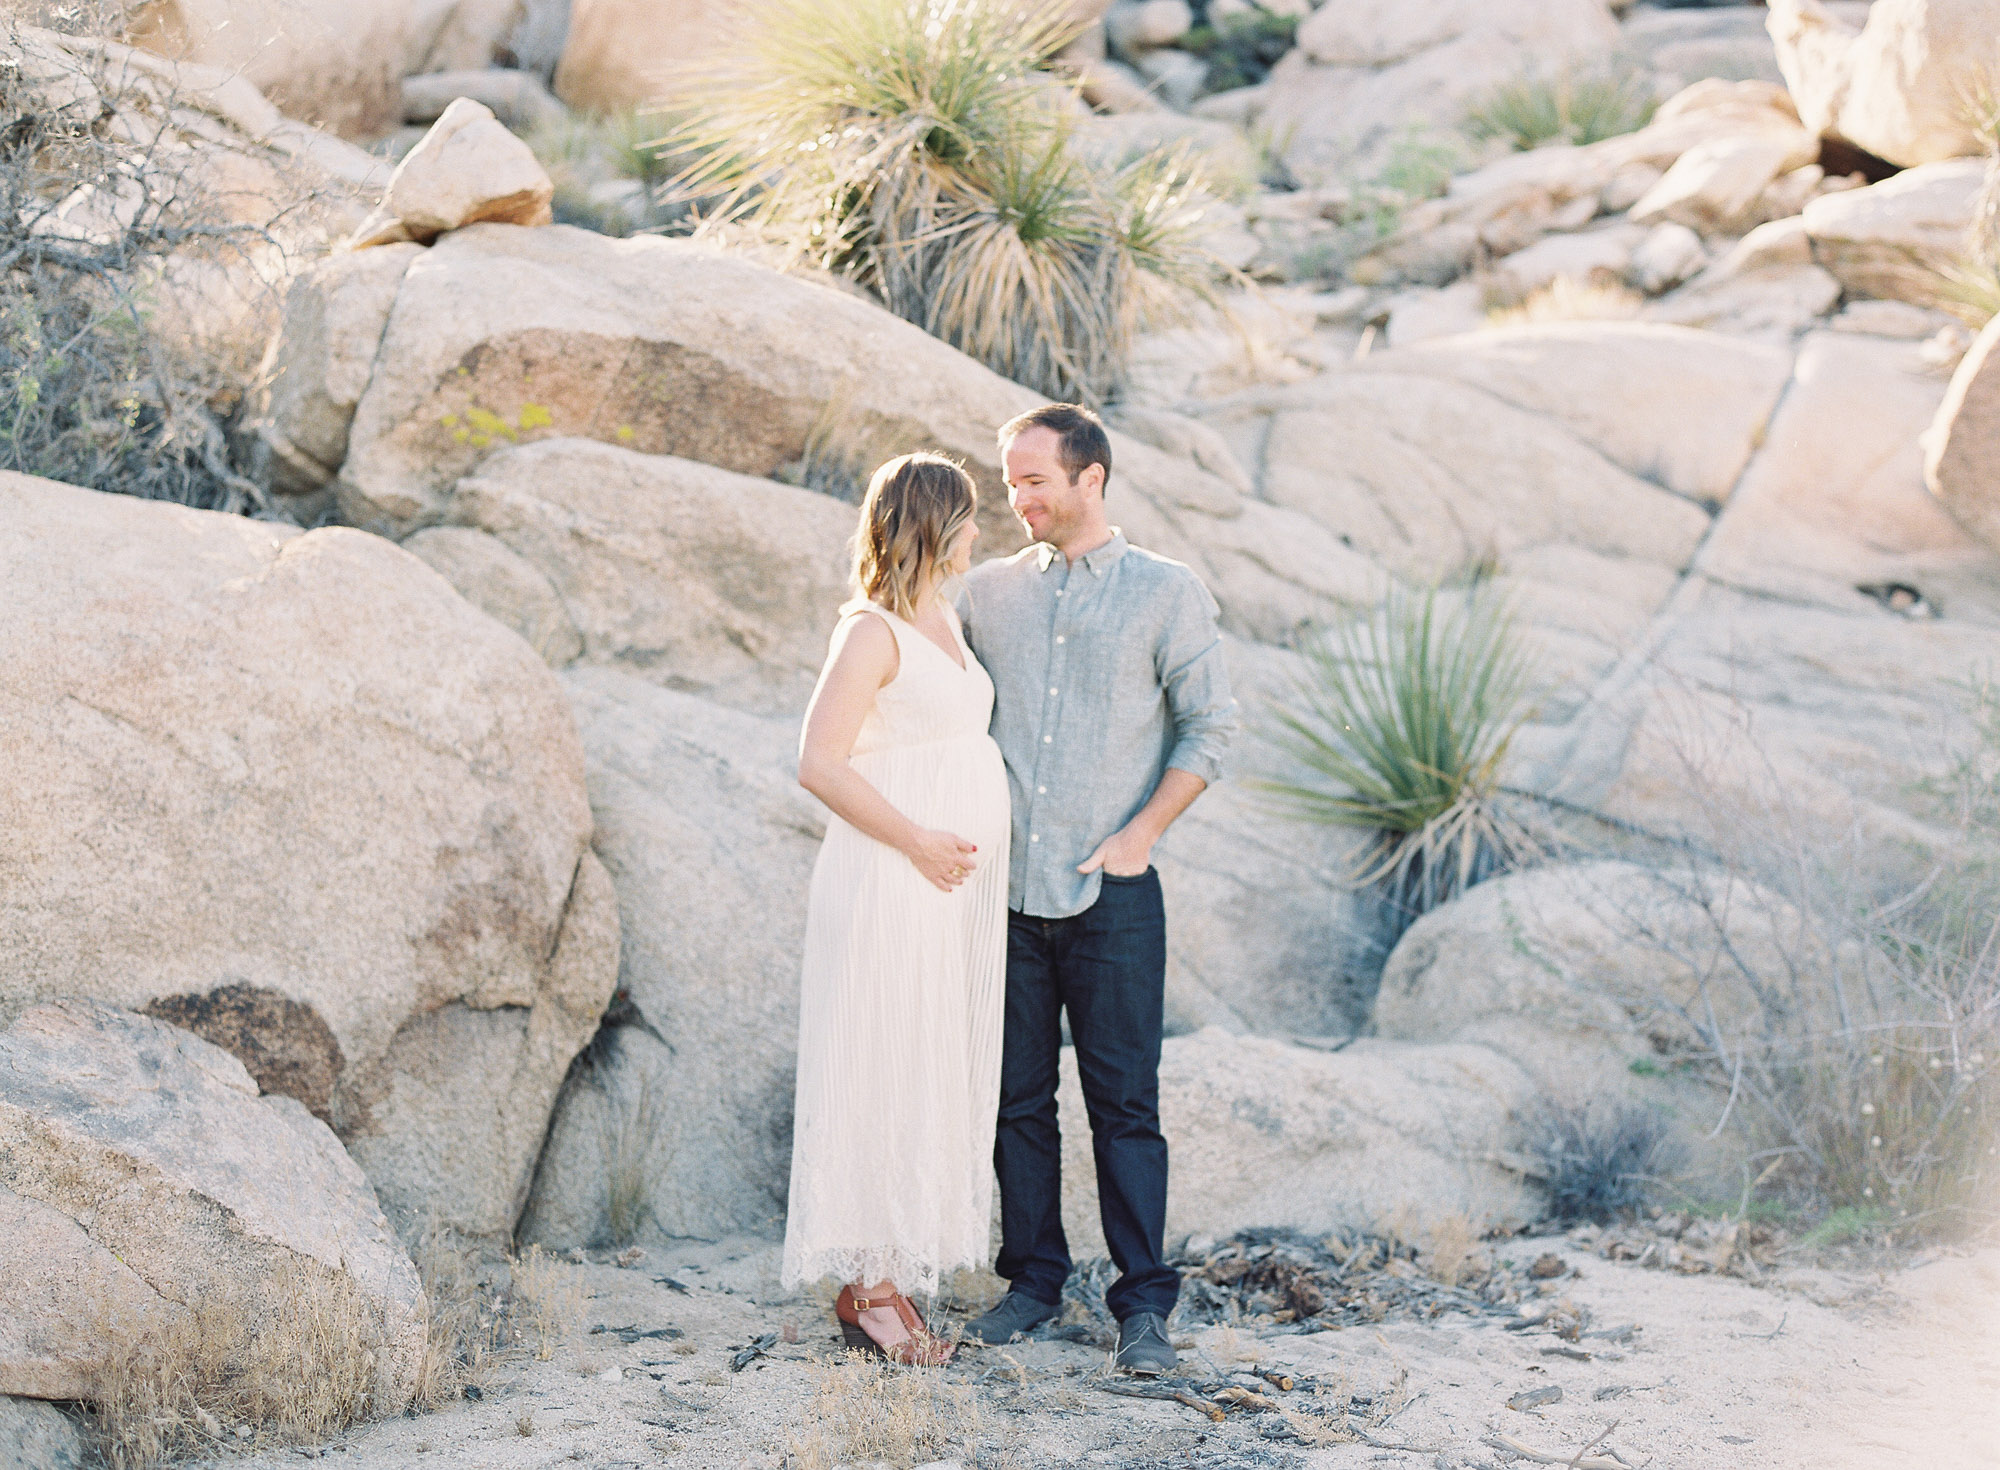 Joshua Tree Maternity Session Palm Springs-1-2.jpg